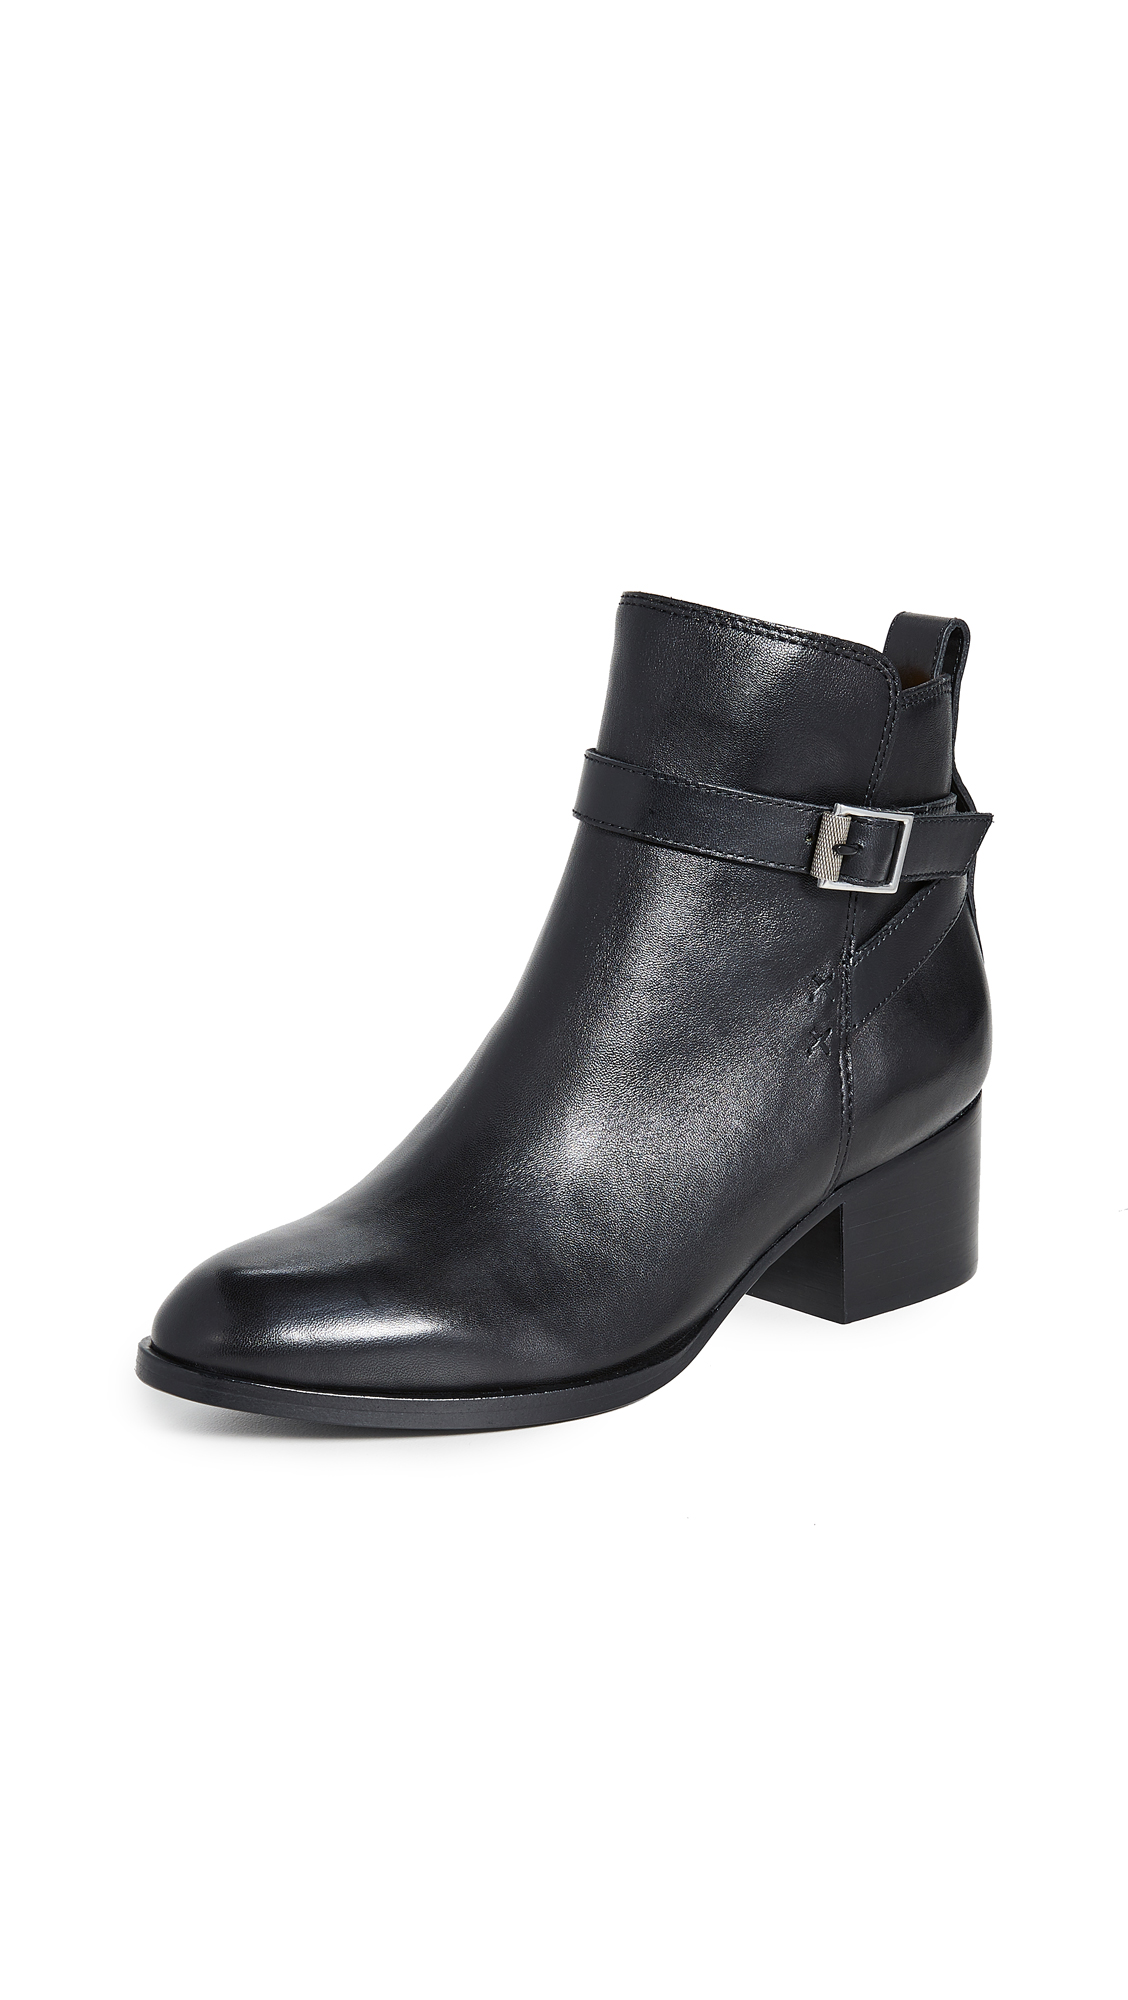 Photo of Rag & Bone Walker Buckle Booties - shop Rag & Bone Booties, Heeled online